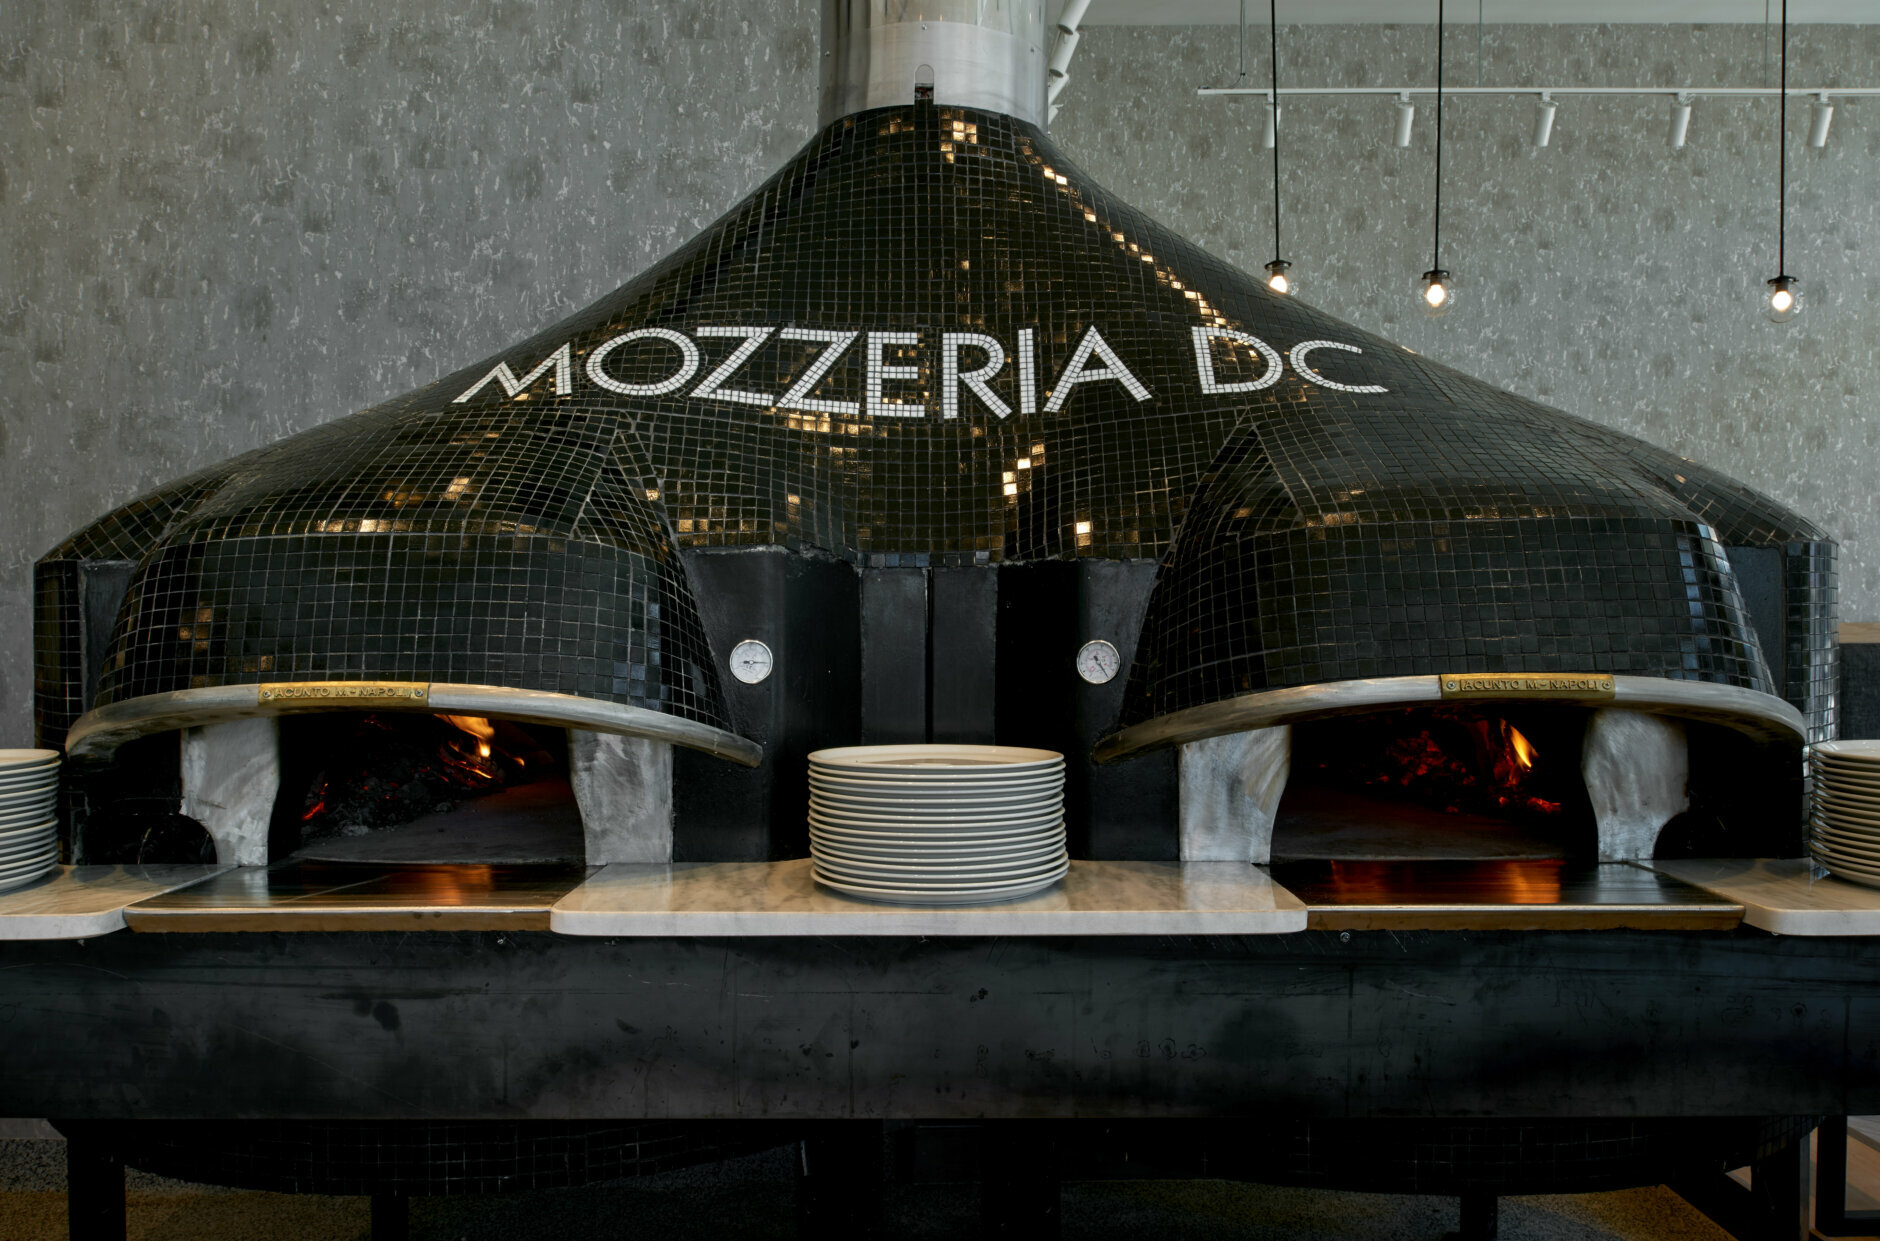 """<h3>Restaurant openings</h3> <p>The list of D.C.-area restaurants the pandemic closed in 2020 is depressingly long, so instead, here are some that forged ahead with new openings.</p> <p>Popular deli <a href=""""https://wtop.com/business-finance/2020/07/call-your-mother-opens-georgetown-location/"""" target=""""_blank"""" rel=""""noopener"""">Call Your Mother</a> has locations in Georgetown and Capitol Hill and is adding a food trolley in Bethesda, Maryland, and it plans a fifth location in North Bethesda.</p> <p><a href=""""https://wtop.com/business-finance/2020/08/ruthies-all-day-brings-meat-and-three-to-south-arlington/"""" target=""""_blank"""" rel=""""noopener"""">Ruthie's All Day</a> brought its """"meat and three"""" menu to South Arlington, Virginia.</p> <p>Boston's <a href=""""https://wtop.com/business-finance/2020/08/bostons-tatte-bakery-opens-first-dc-location-next-week-2-more-coming/"""" target=""""_blank"""" rel=""""noopener"""">Tatte Bakery and Cafe</a>, with an Israeli-inspired menu, opened the first of several D.C.-area locations.</p> <p>Deaf-owned pizzeria <a href=""""https://wtop.com/business-finance/2020/09/deaf-owned-mozzeria-pizzeria-is-coming-to-h-street-you-might-learn-some-sign-language/"""" target=""""_blank"""" rel=""""noopener"""">Mozzeria</a> brought pizza and sign language to a new location near Gallaudet University.</p> <p><a href=""""https://wtop.com/business-finance/2020/10/dcs-soupergirl-gets-2-million-investment-for-expansion/"""" target=""""_blank"""" rel=""""noopener"""">Soupergirl</a> landed a $2 million investment for expansion.</p> <p><a href=""""https://wtop.com/business-finance/2020/10/dcs-chiko-restaurant-is-opening-a-bethesda-location/"""" target=""""_blank"""" rel=""""noopener"""">CHIKO</a> opened a third location in Bethesda.</p> <p><a href=""""https://wtop.com/business-finance/2020/10/connecticuts-colony-grill-brings-hot-oil-pizza-to-arlington/"""" target=""""_blank"""" rel=""""noopener"""">Colony Grill</a> brought its """"hot oil"""" pizza to Arlington.</p> <p><a href=""""https://wtop.com/business-finance/2020/11/taco-favorite-surfside-opens-at-the-wharf-no-m"""